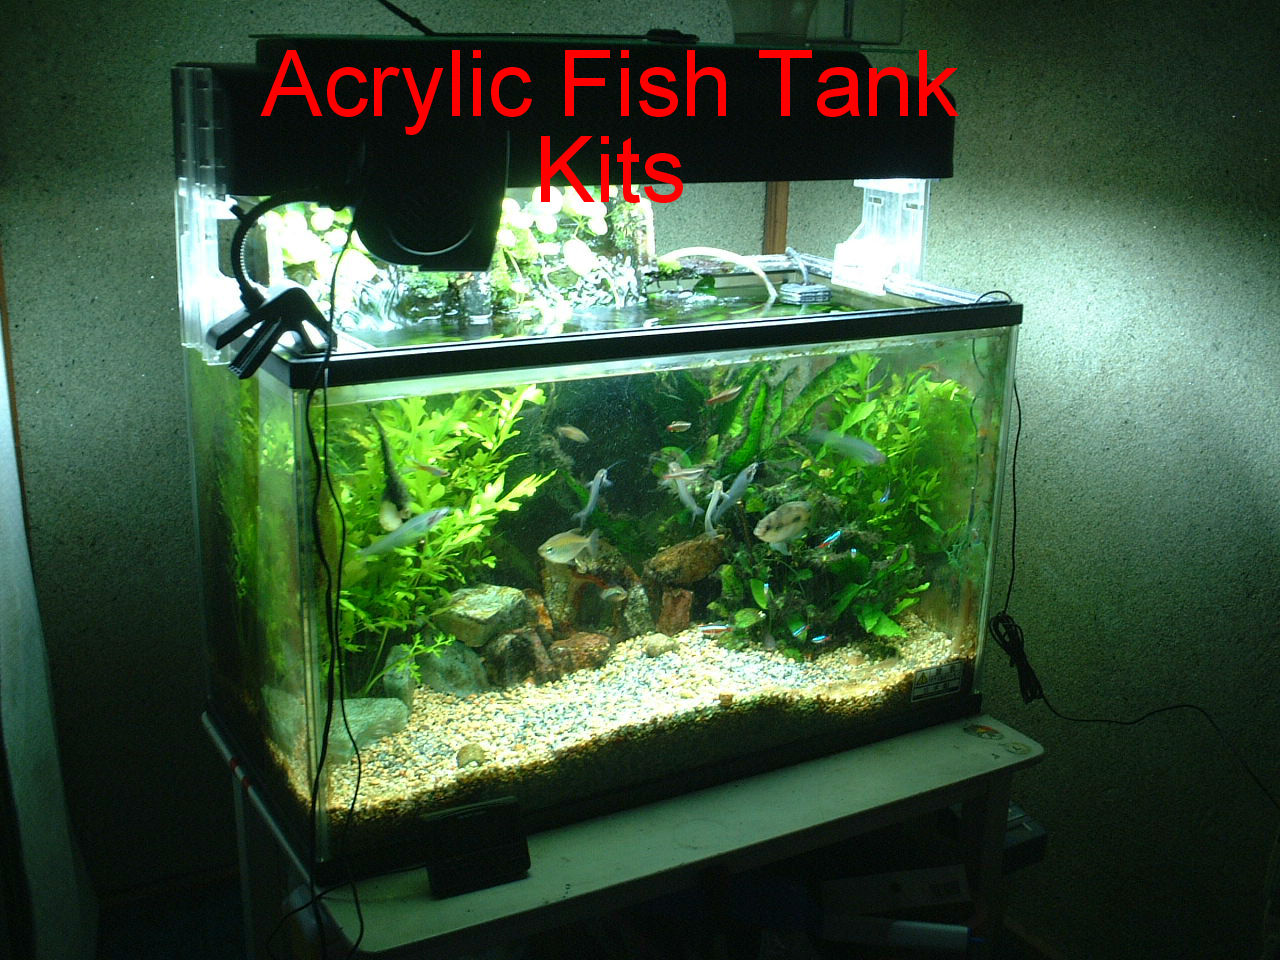 Acrylic fish tank kits news to review for How to build an acrylic fish tank